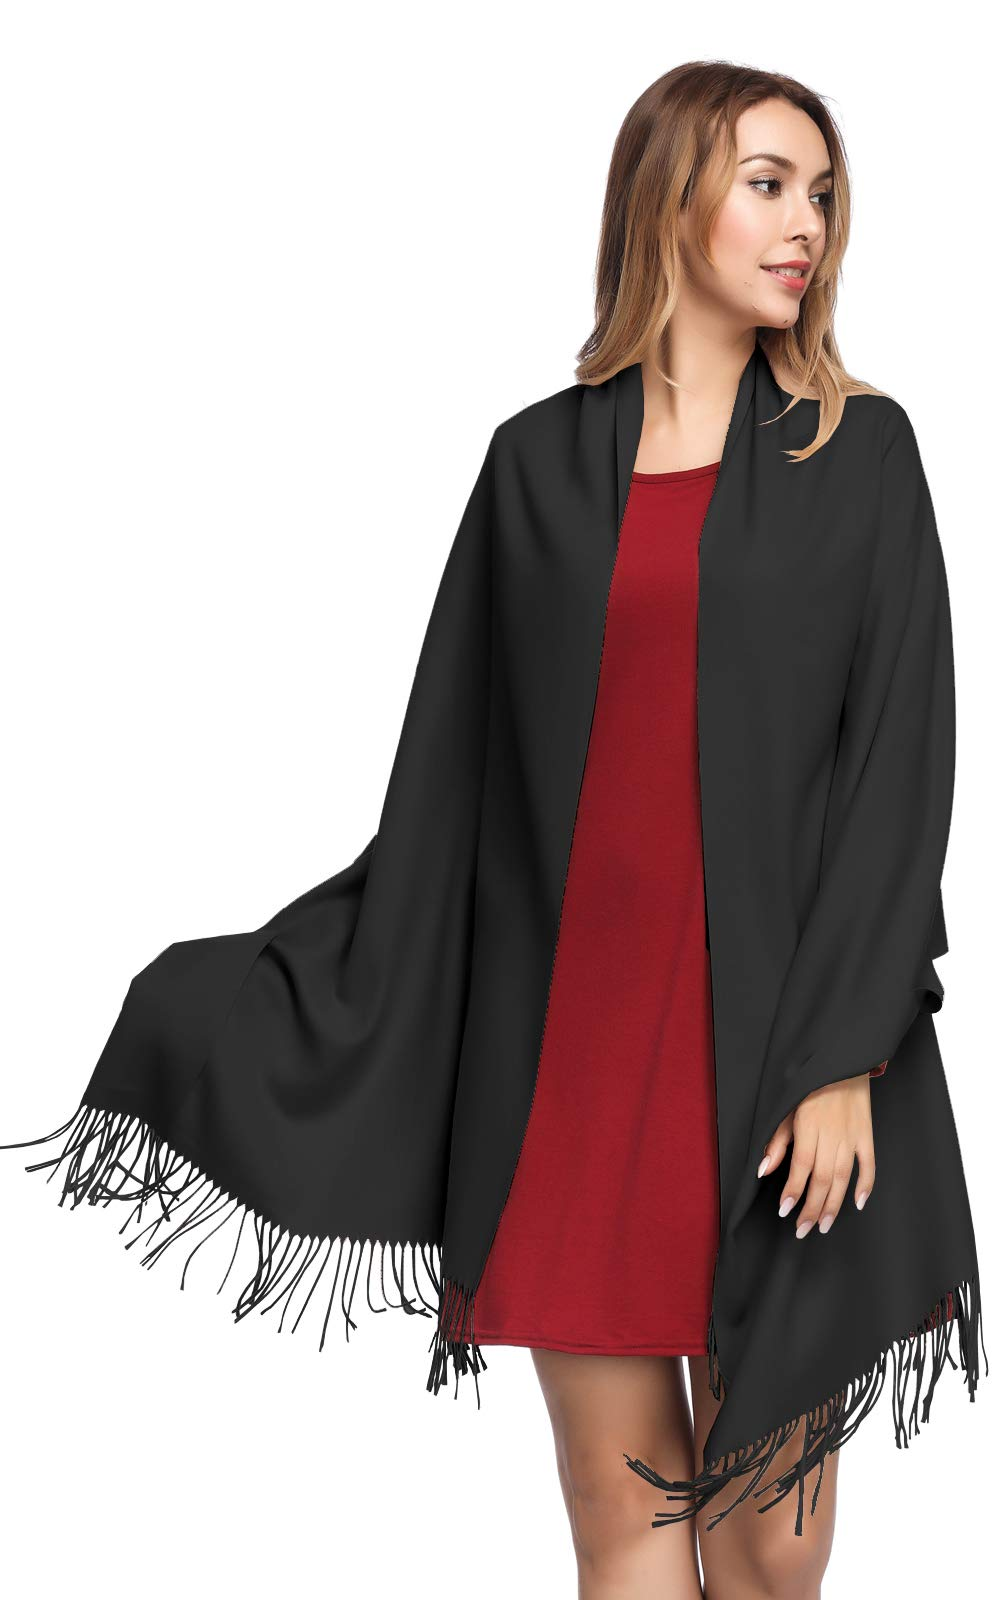 Pashmina Shawls and Wraps for Women - PoilTreeWing Solid Color Cashmere Scarfs(Black) by PoilTreeWing